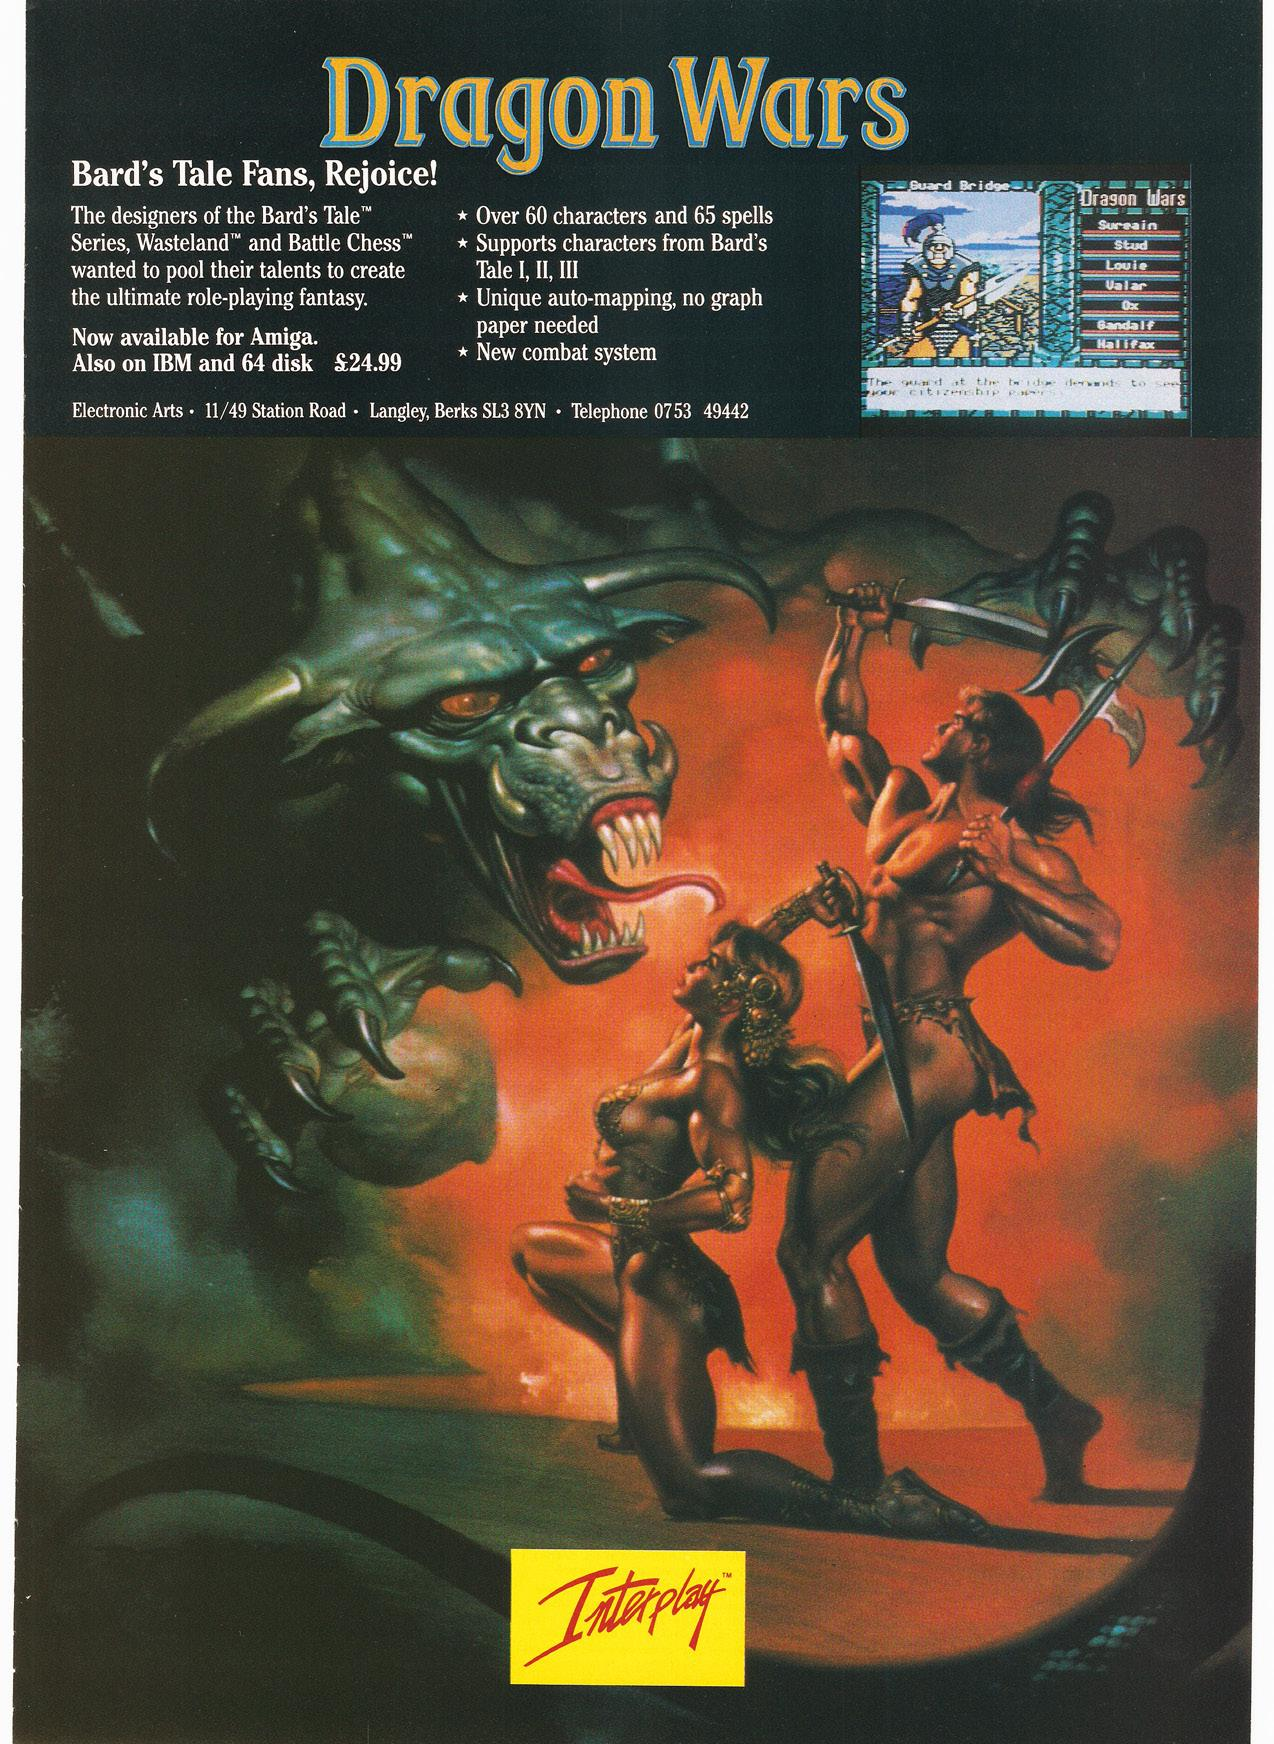 Dragon Wars Amiga game vintage poster